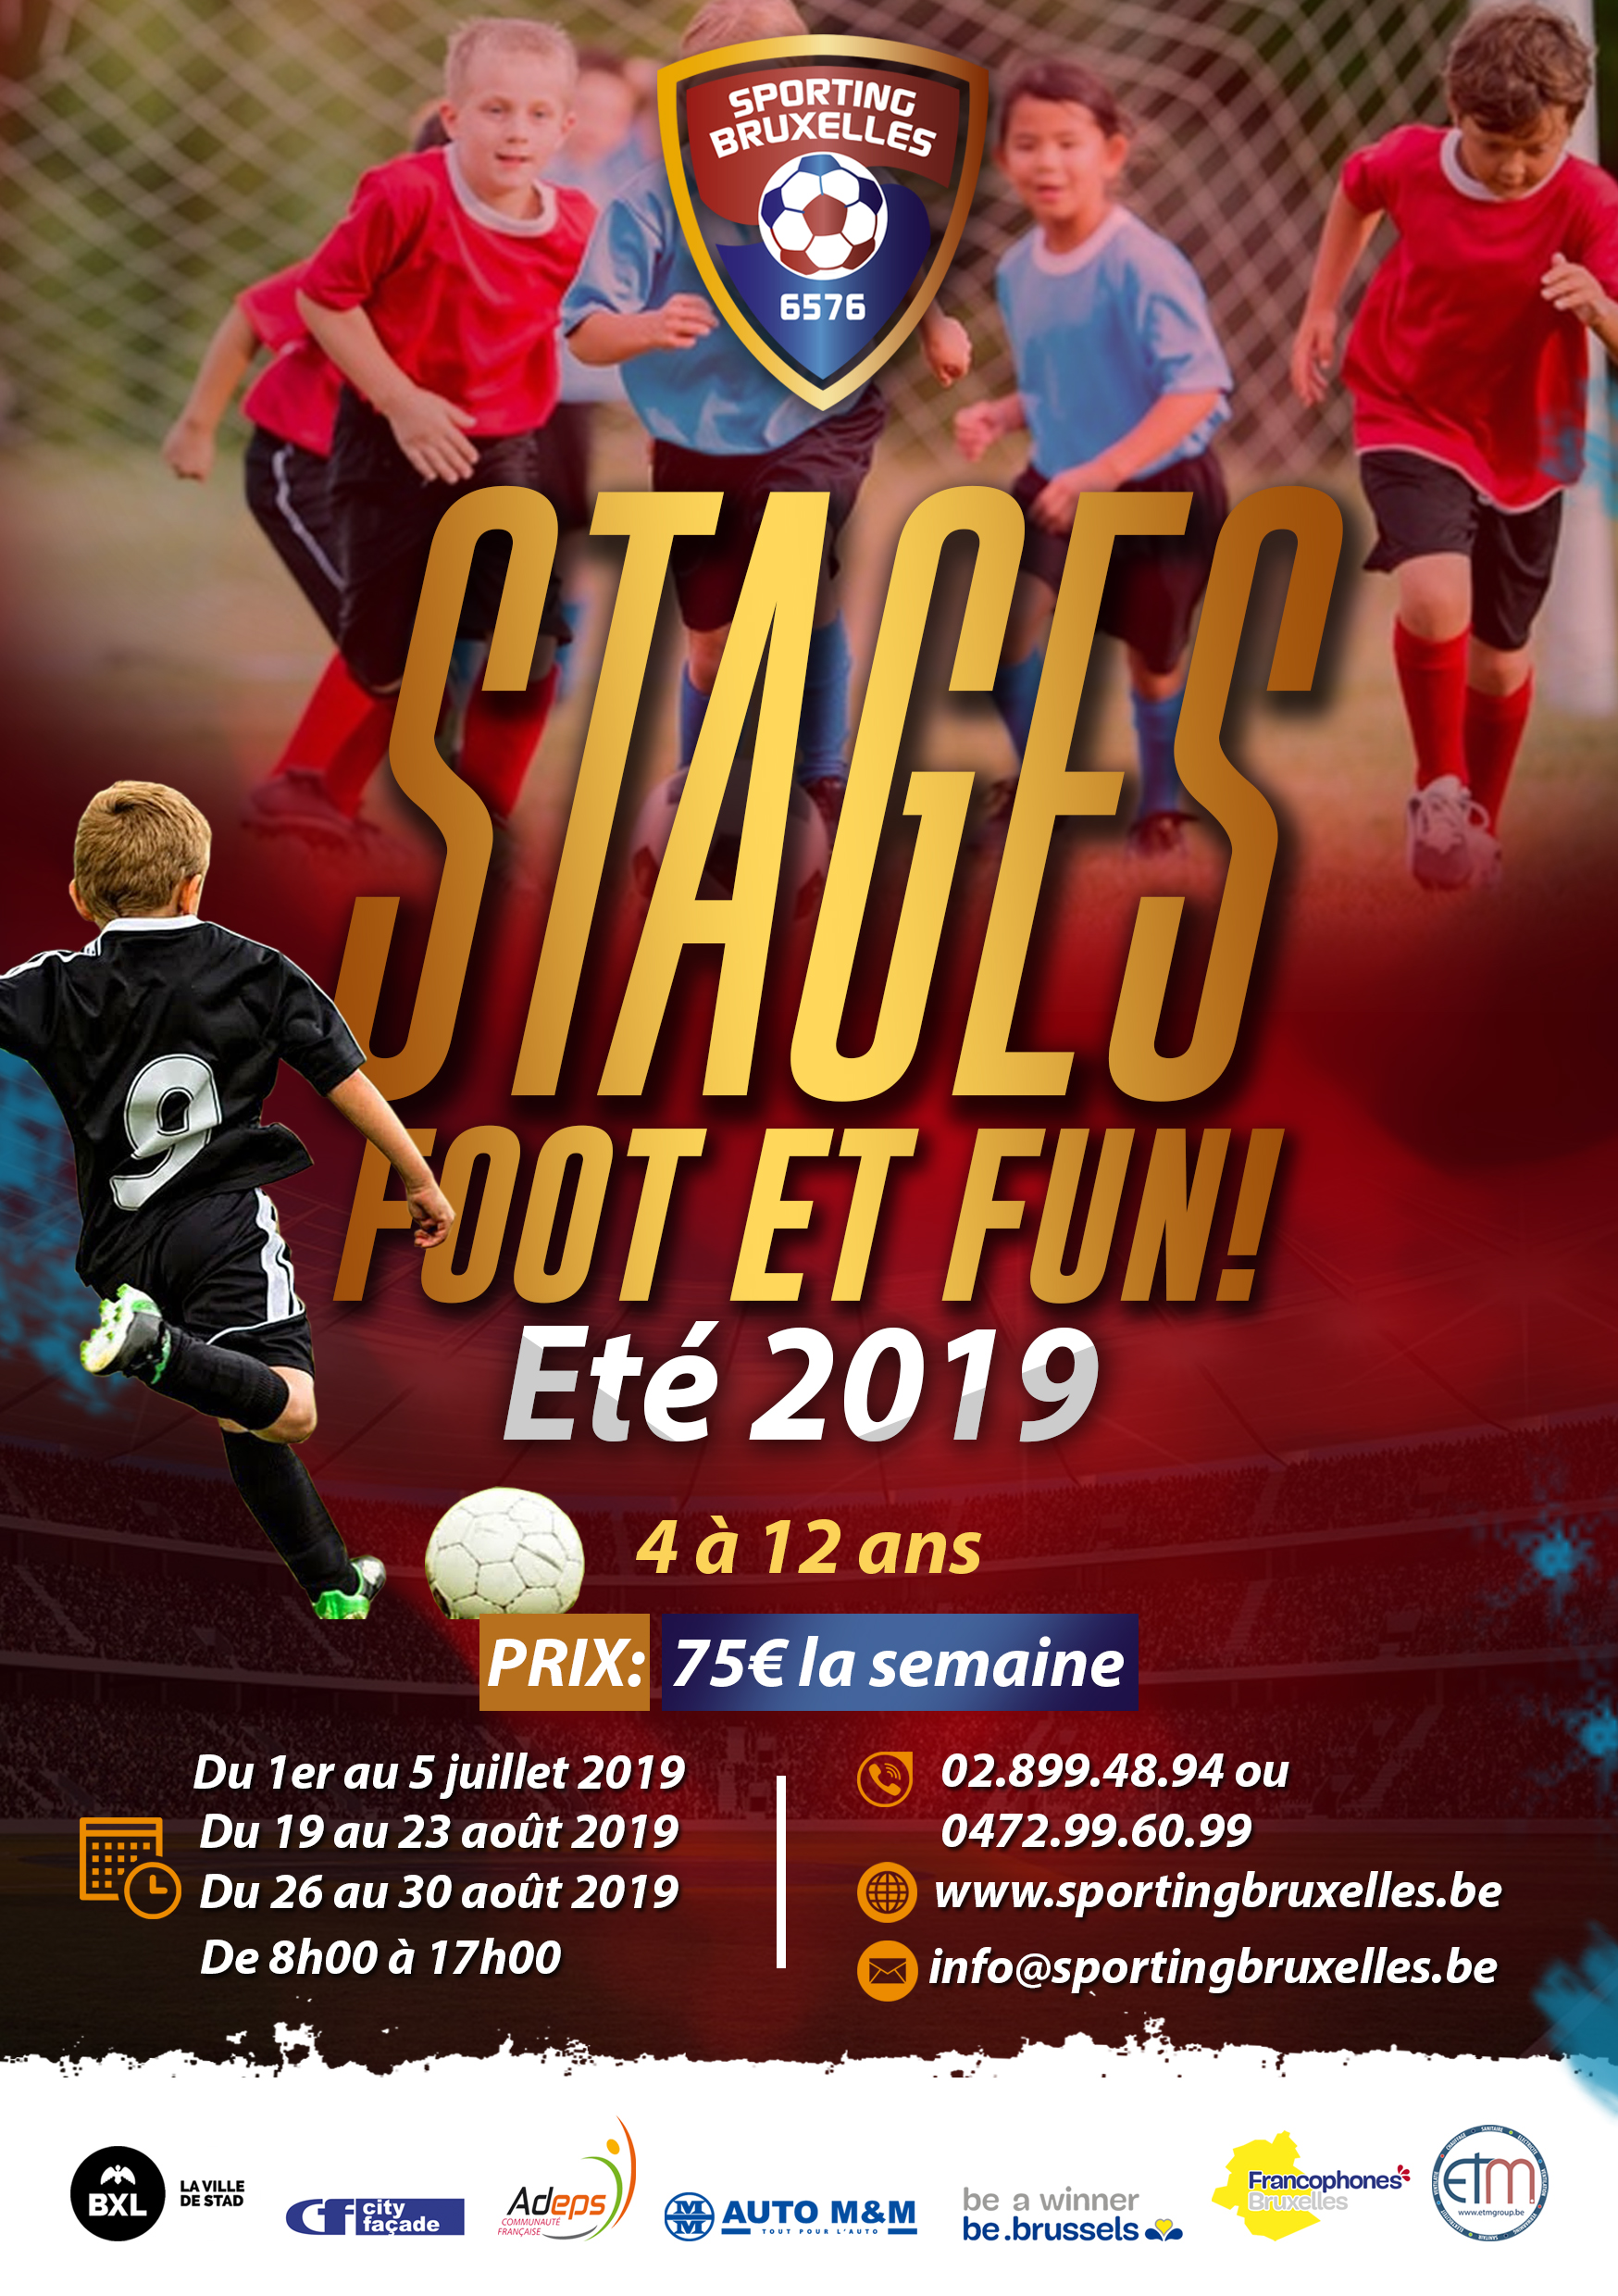 Stages foot et fun ! Eté 2019